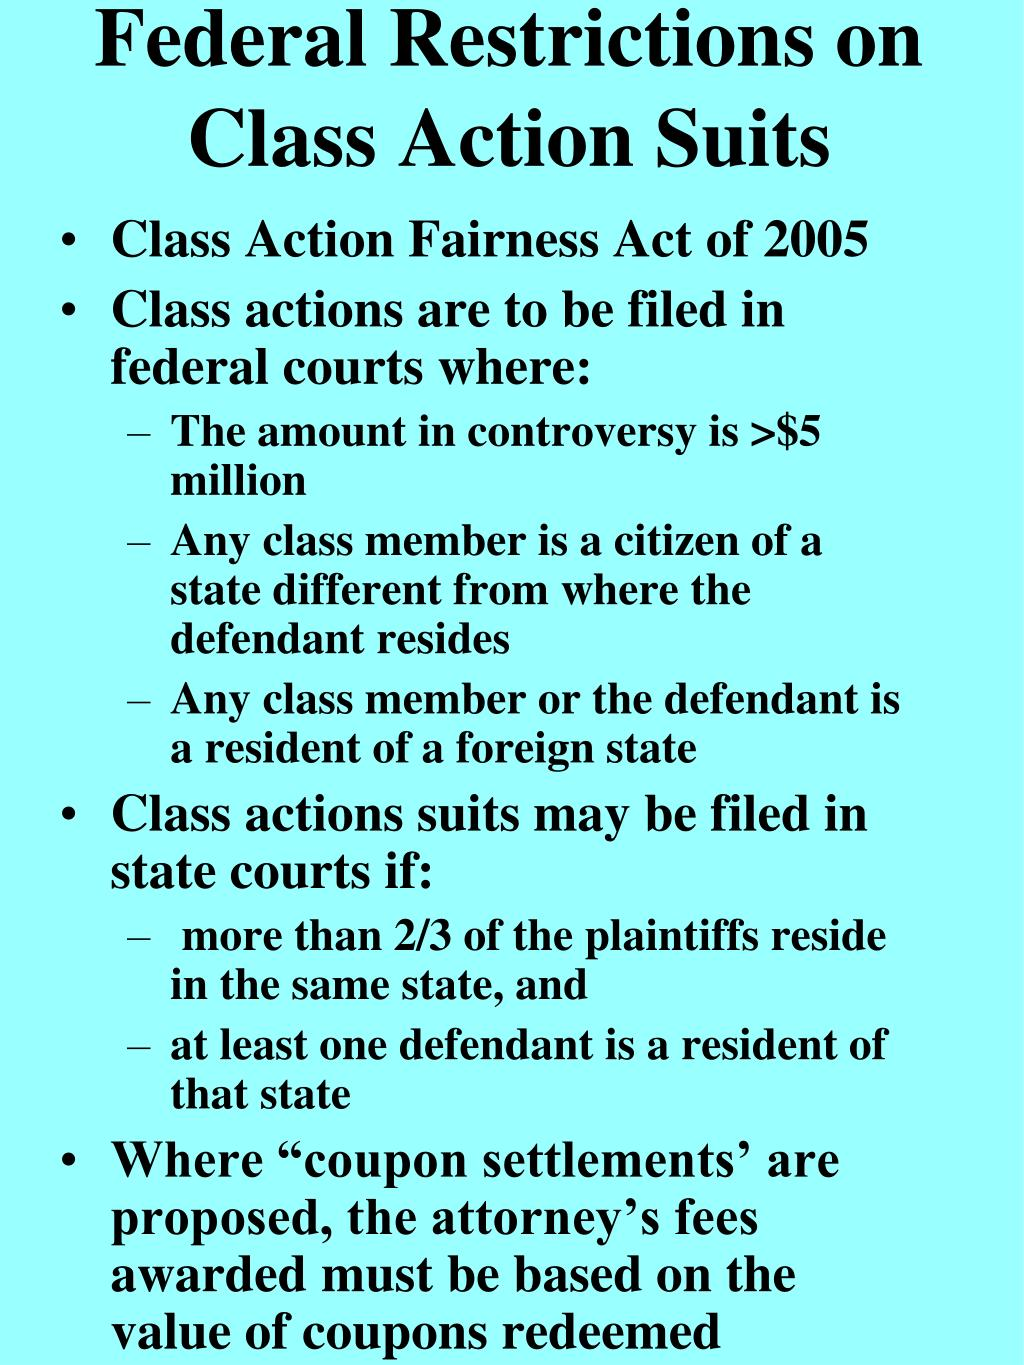 Federal Restrictions on Class Action Suits